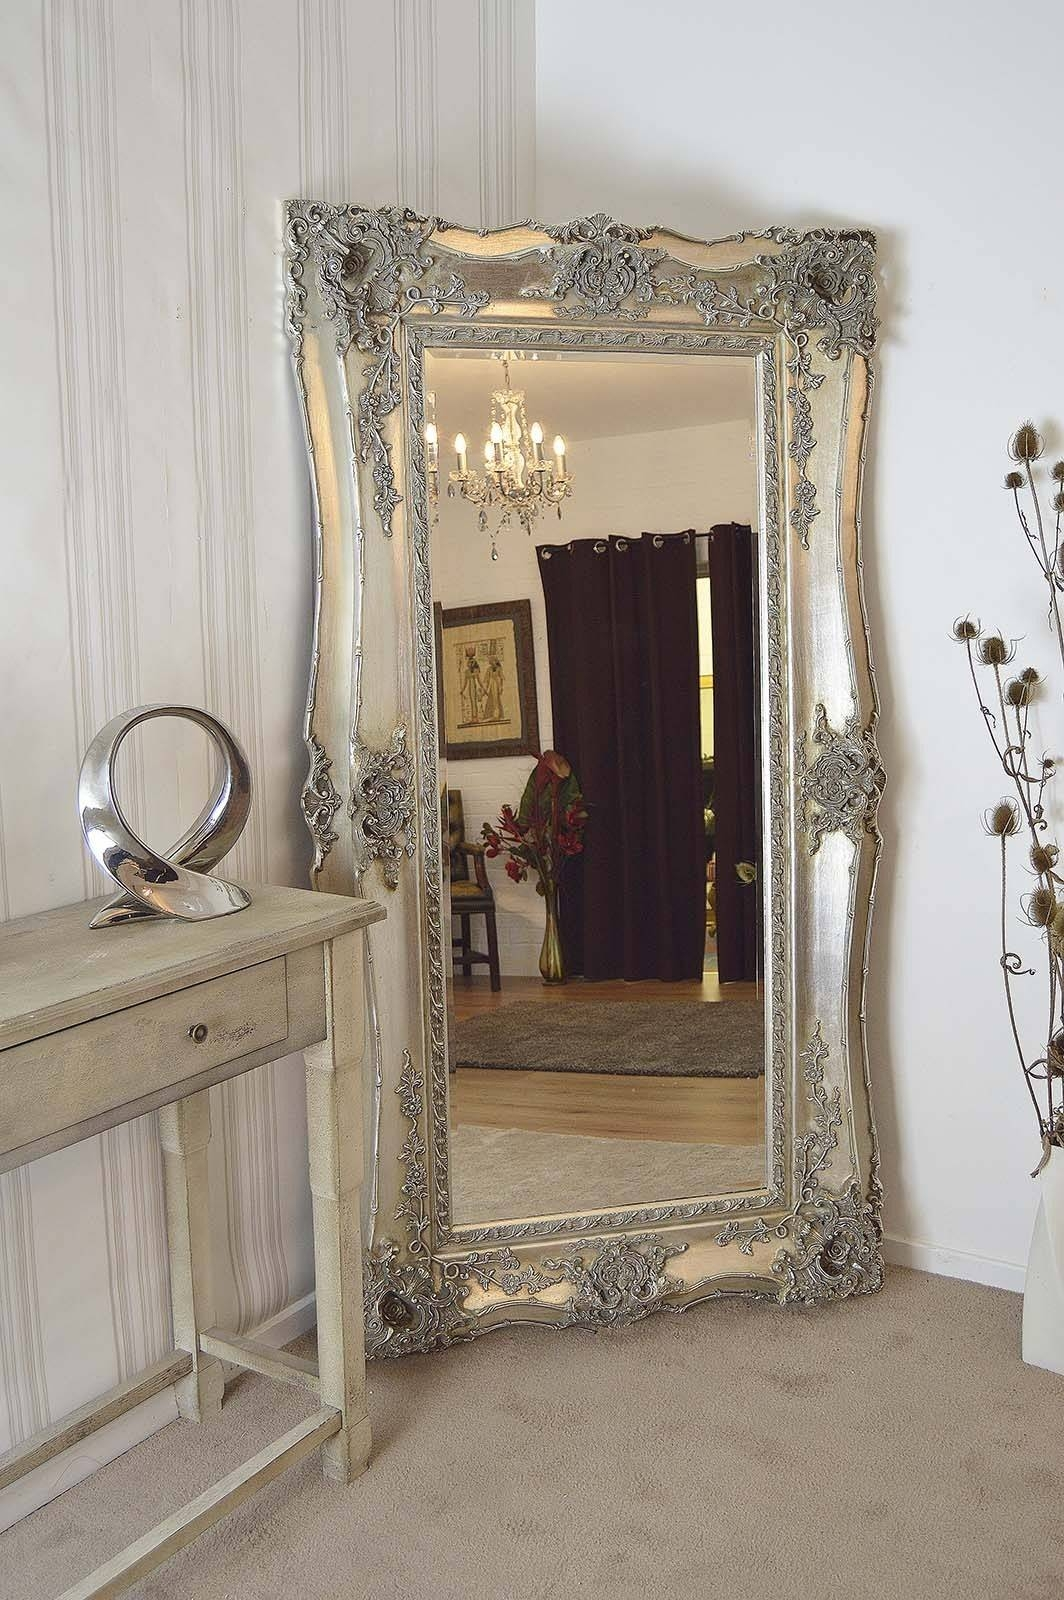 Homeware: Oval Full Length Standing Mirror | Large Floor Mirrors in Huge Mirrors For Cheap (Image 19 of 25)